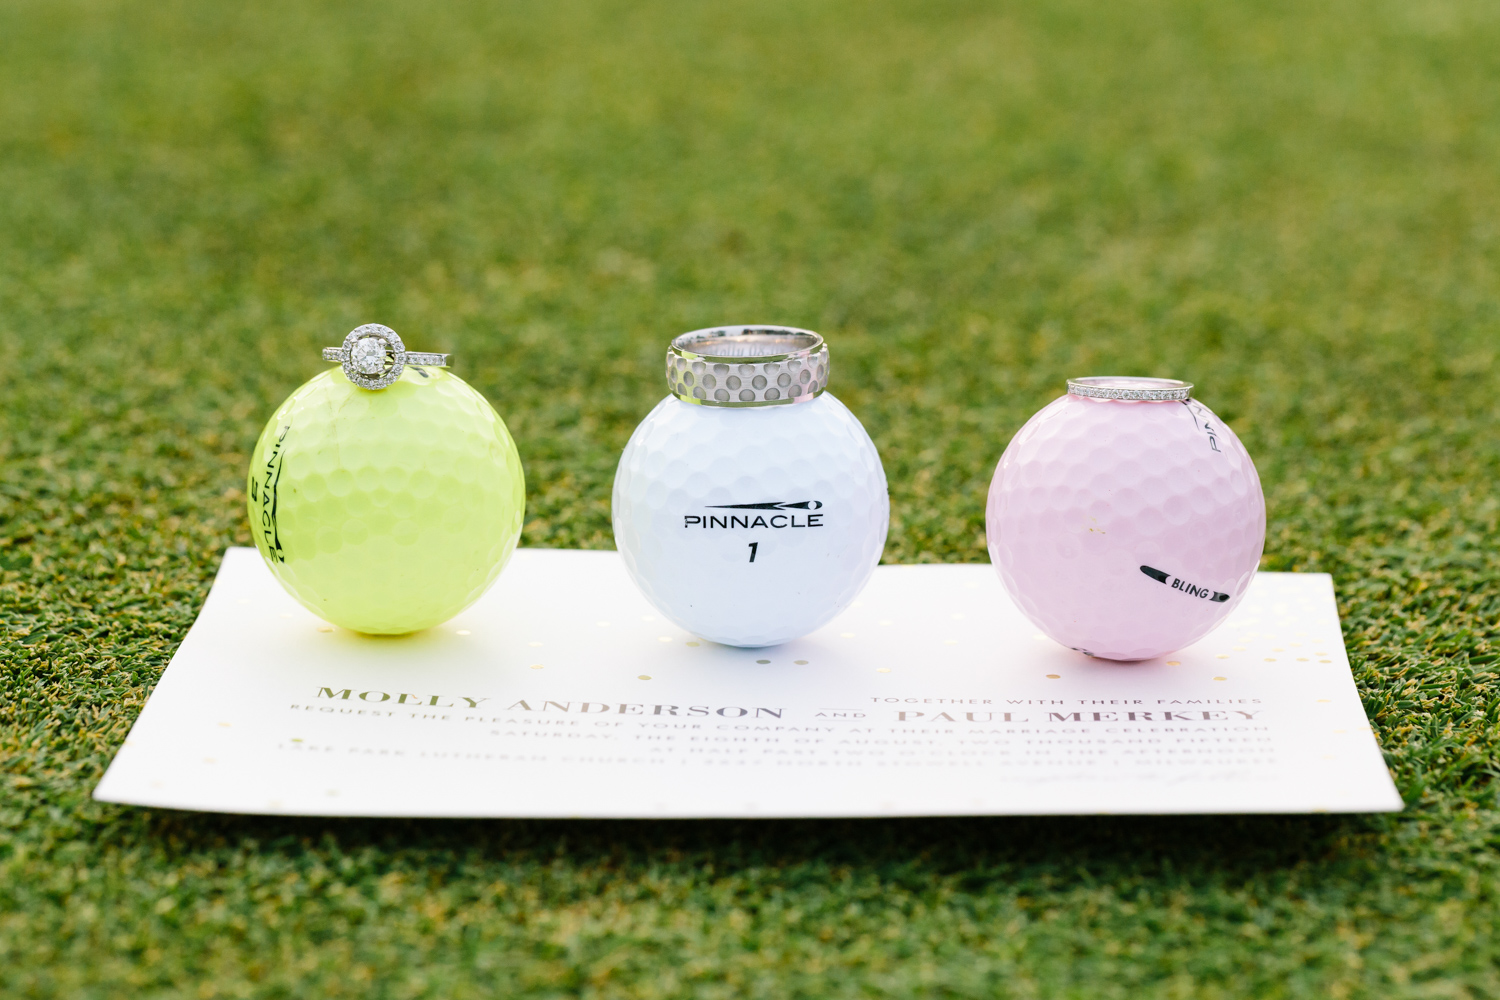 golf lovers country club wedding - engagement and wedding rings on golf balls